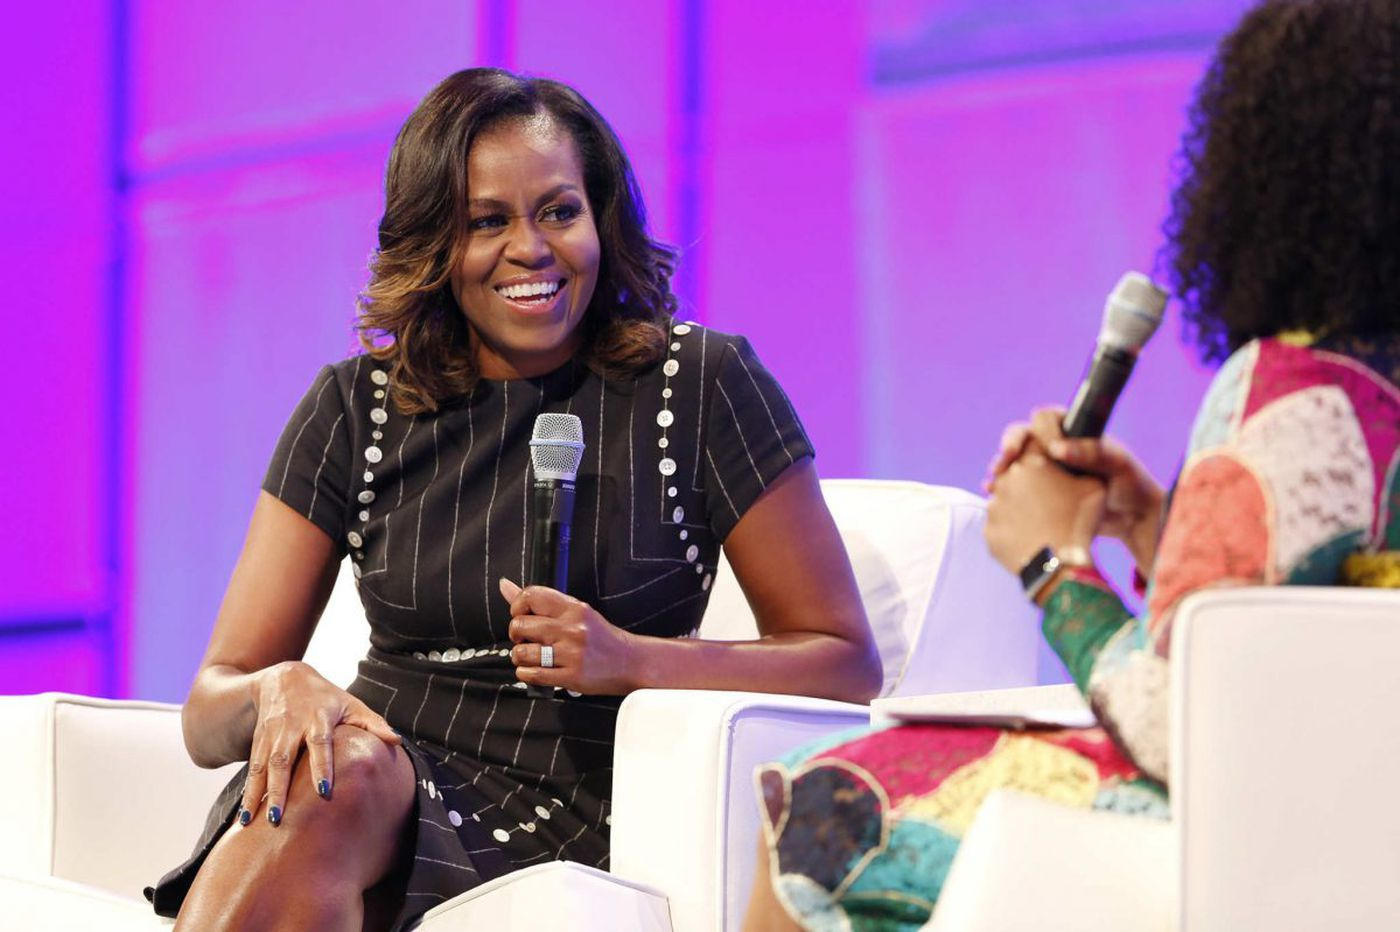 Michelle Obama tells women in Philly WH life was like 'being shot out of a cannon'